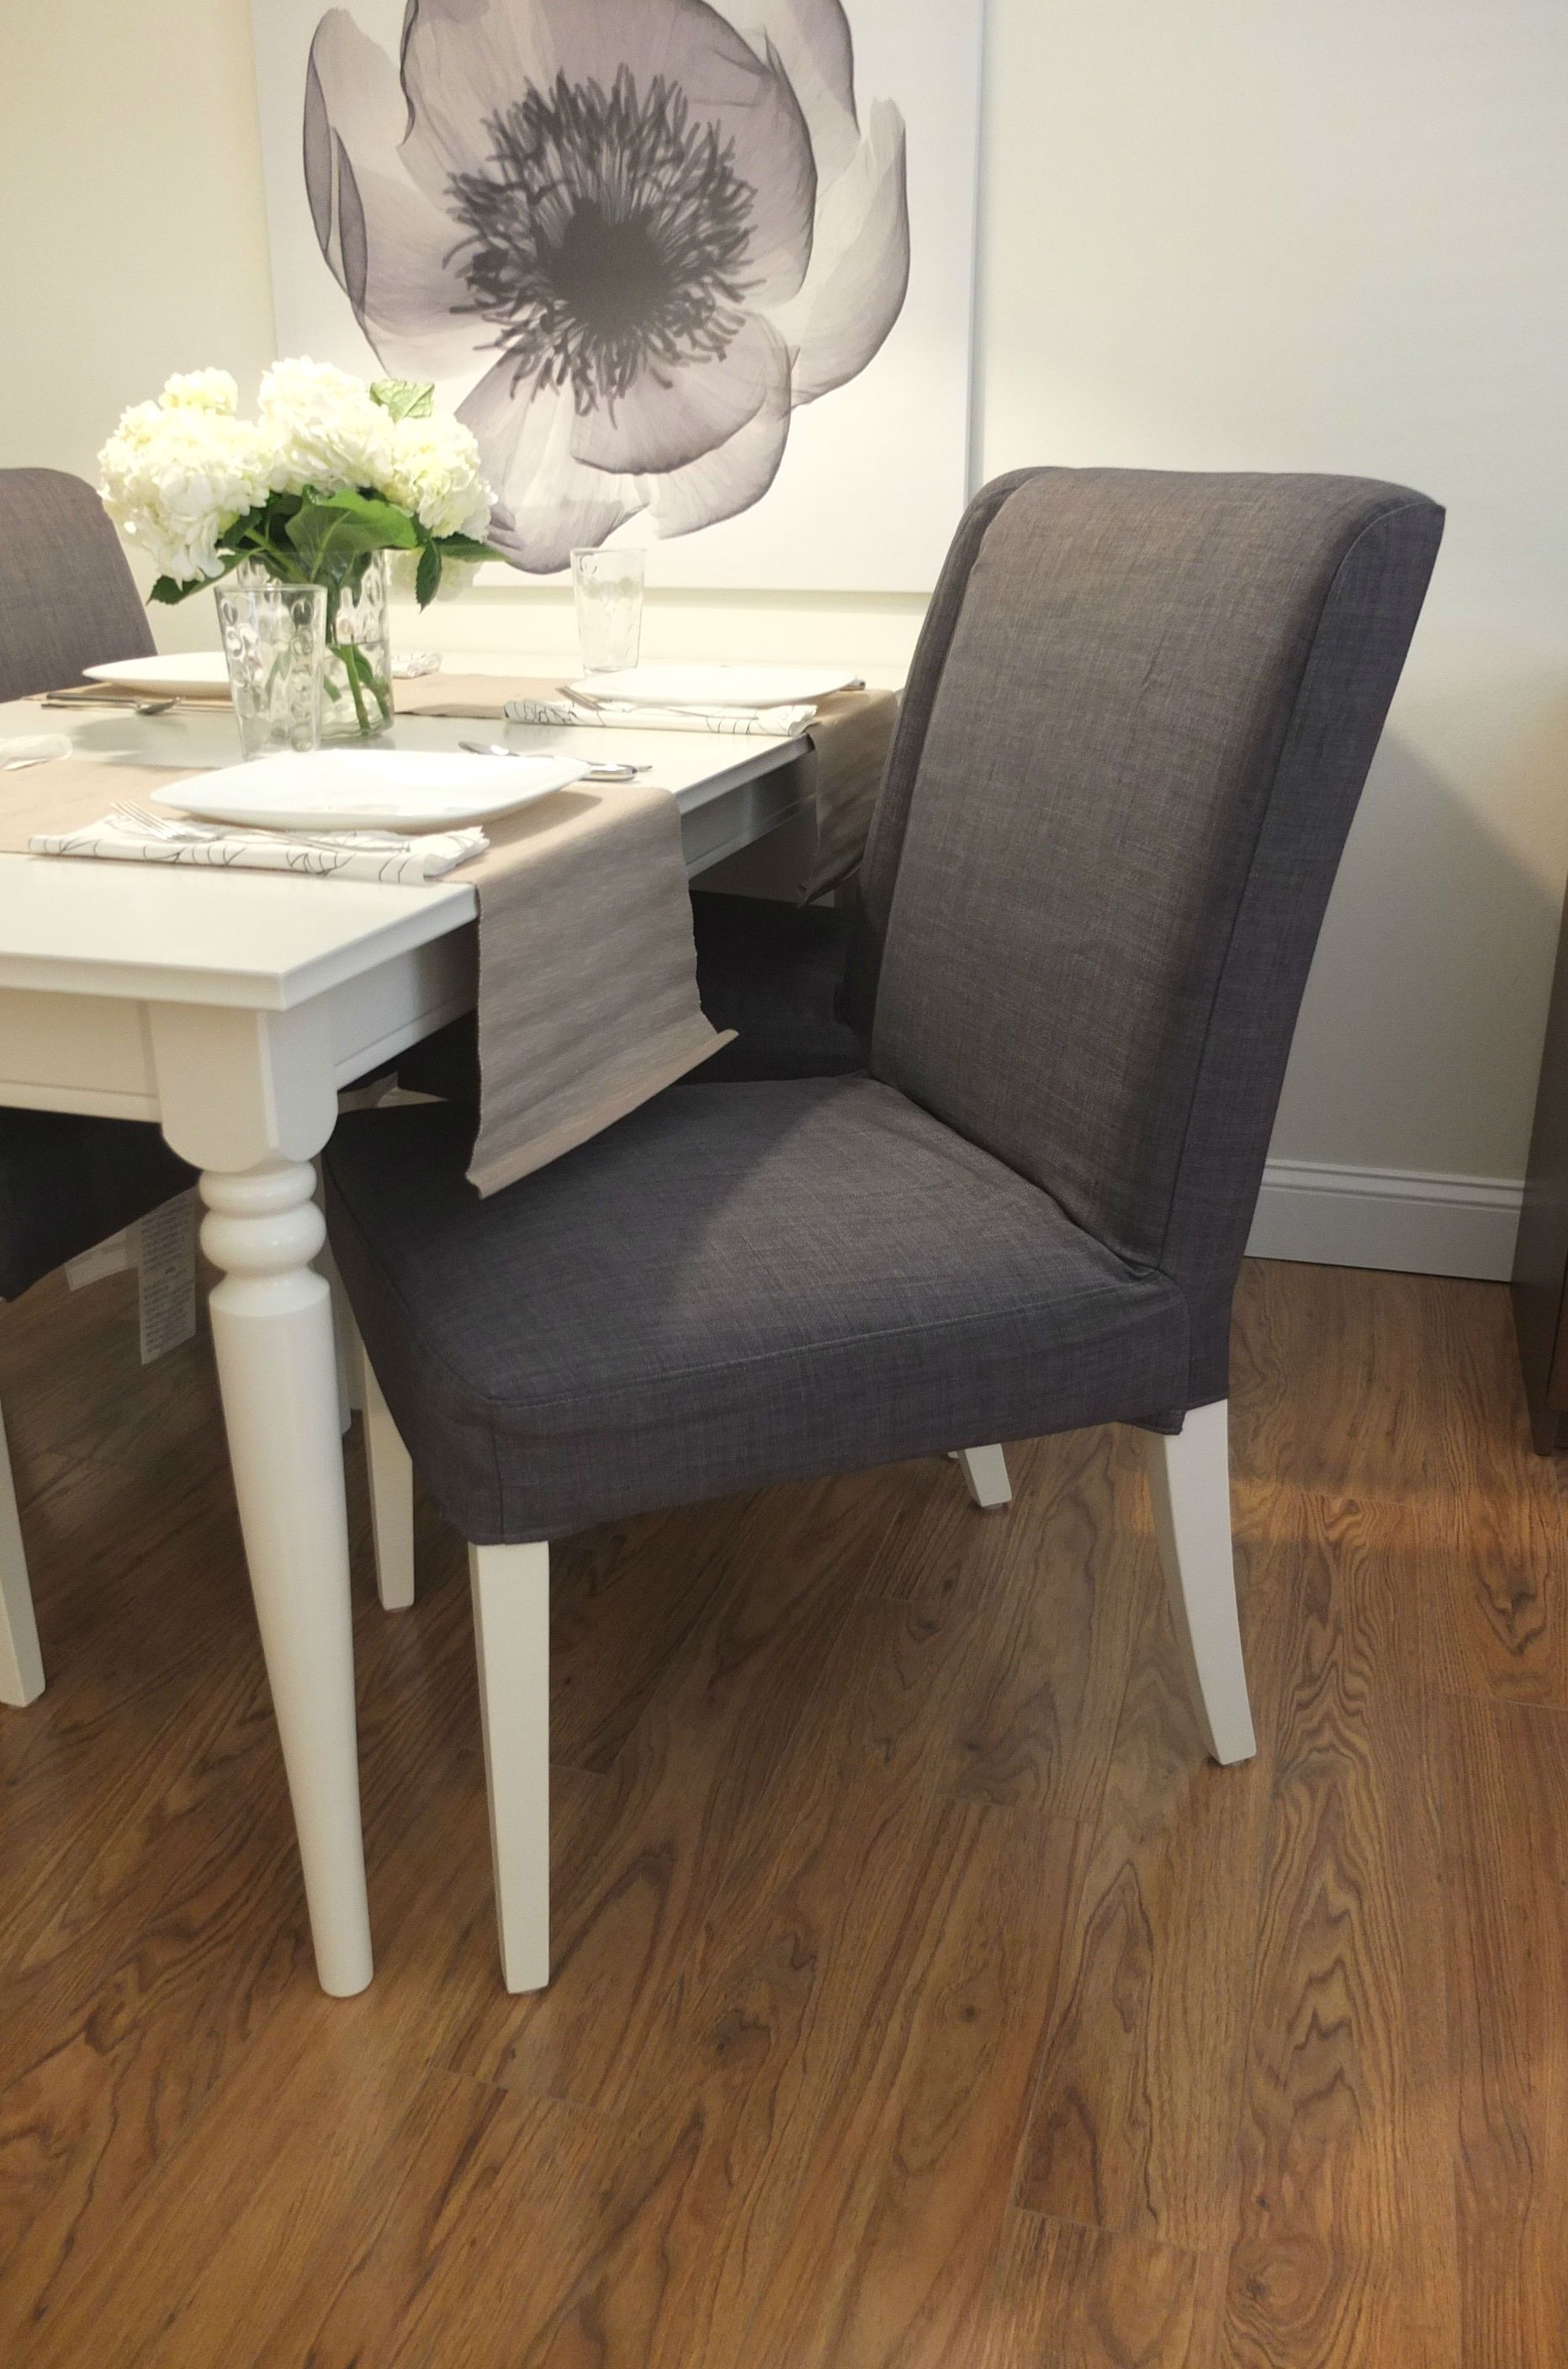 guineys dining chair covers portable lift with a new area sandra is bound to entertain the